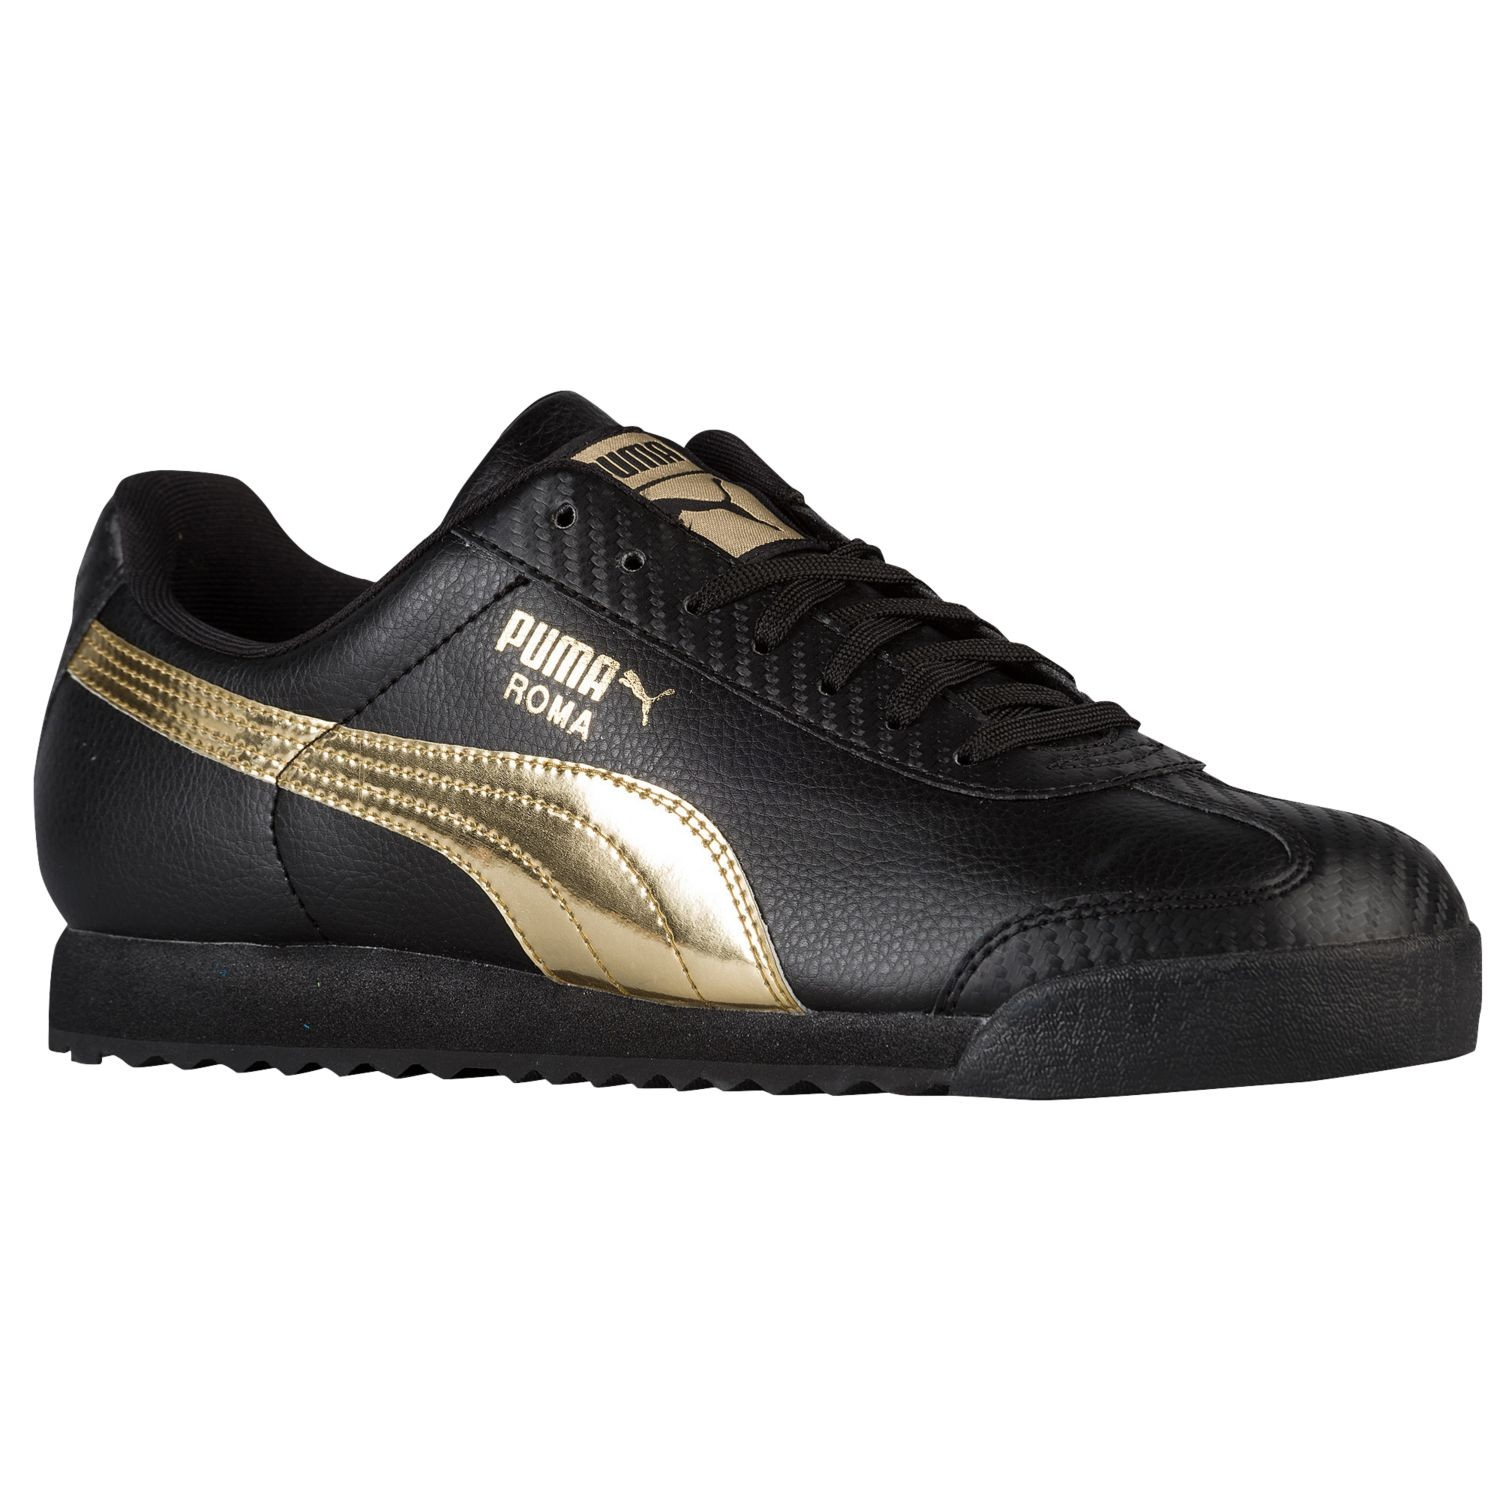 Puma Roma Black and Gold